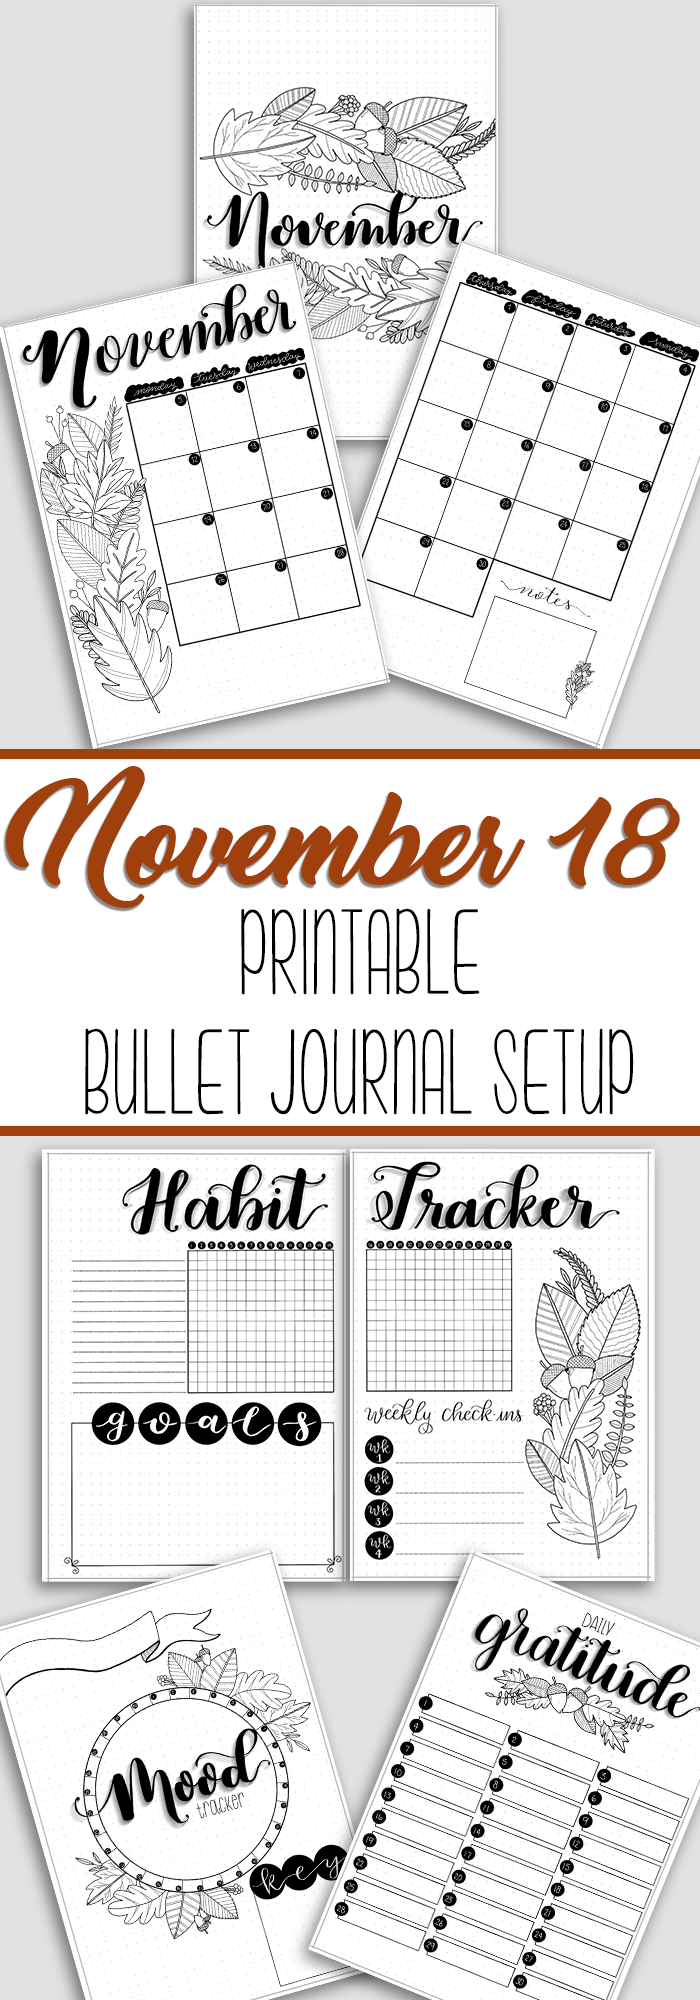 November 18 Bullet Journal Printable Pack #novemberbulletjournalcover Snag this November 2018 Printable Bullet Journal Setup complete with cover page, calendar, habit tracker, gratitude log, and mood tracker. #novemberbulletjournalcover